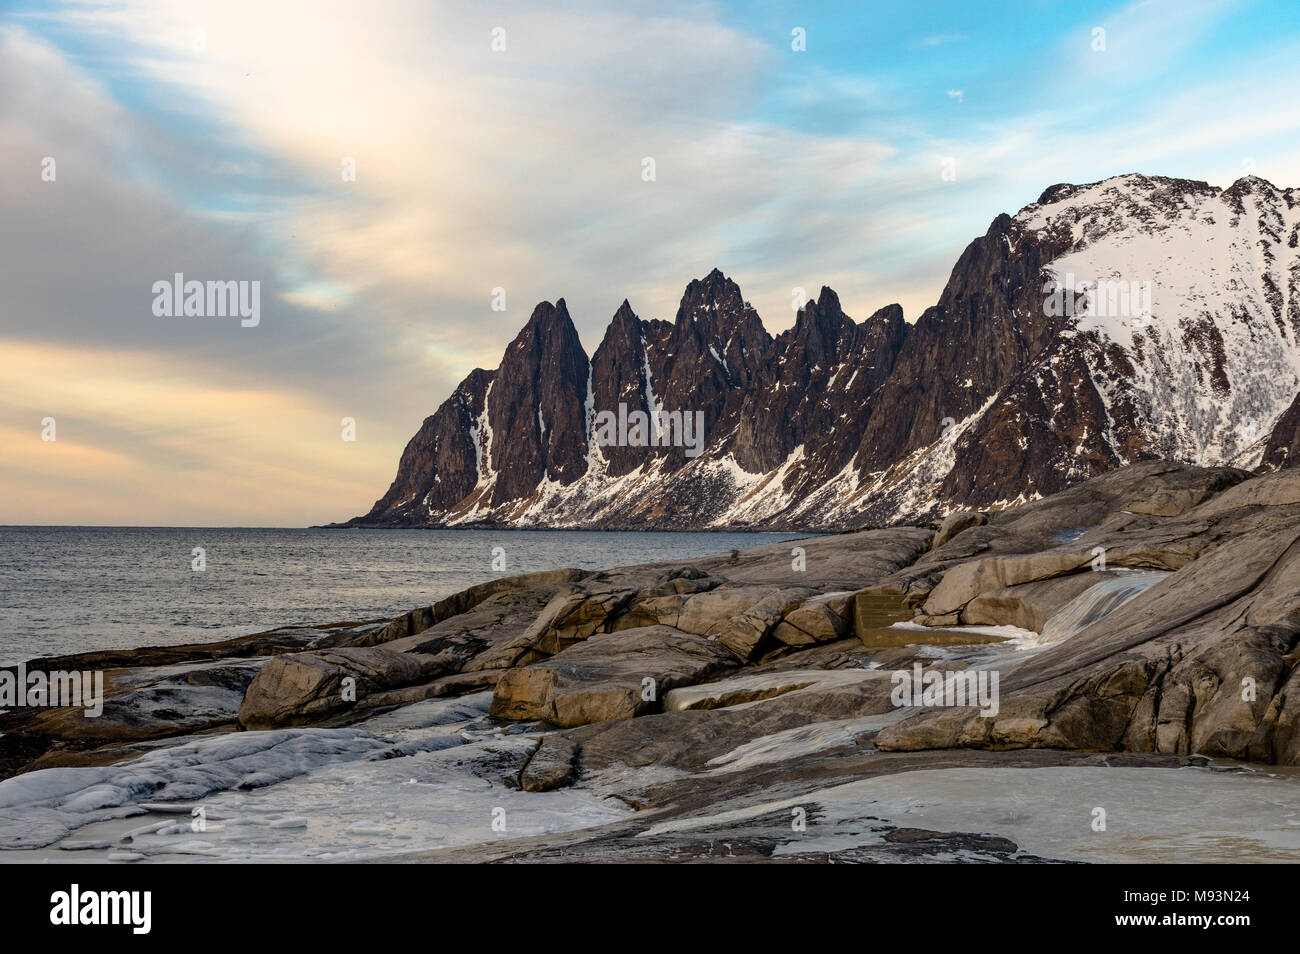 Winter scenery of Senja in Norway Stock Photo